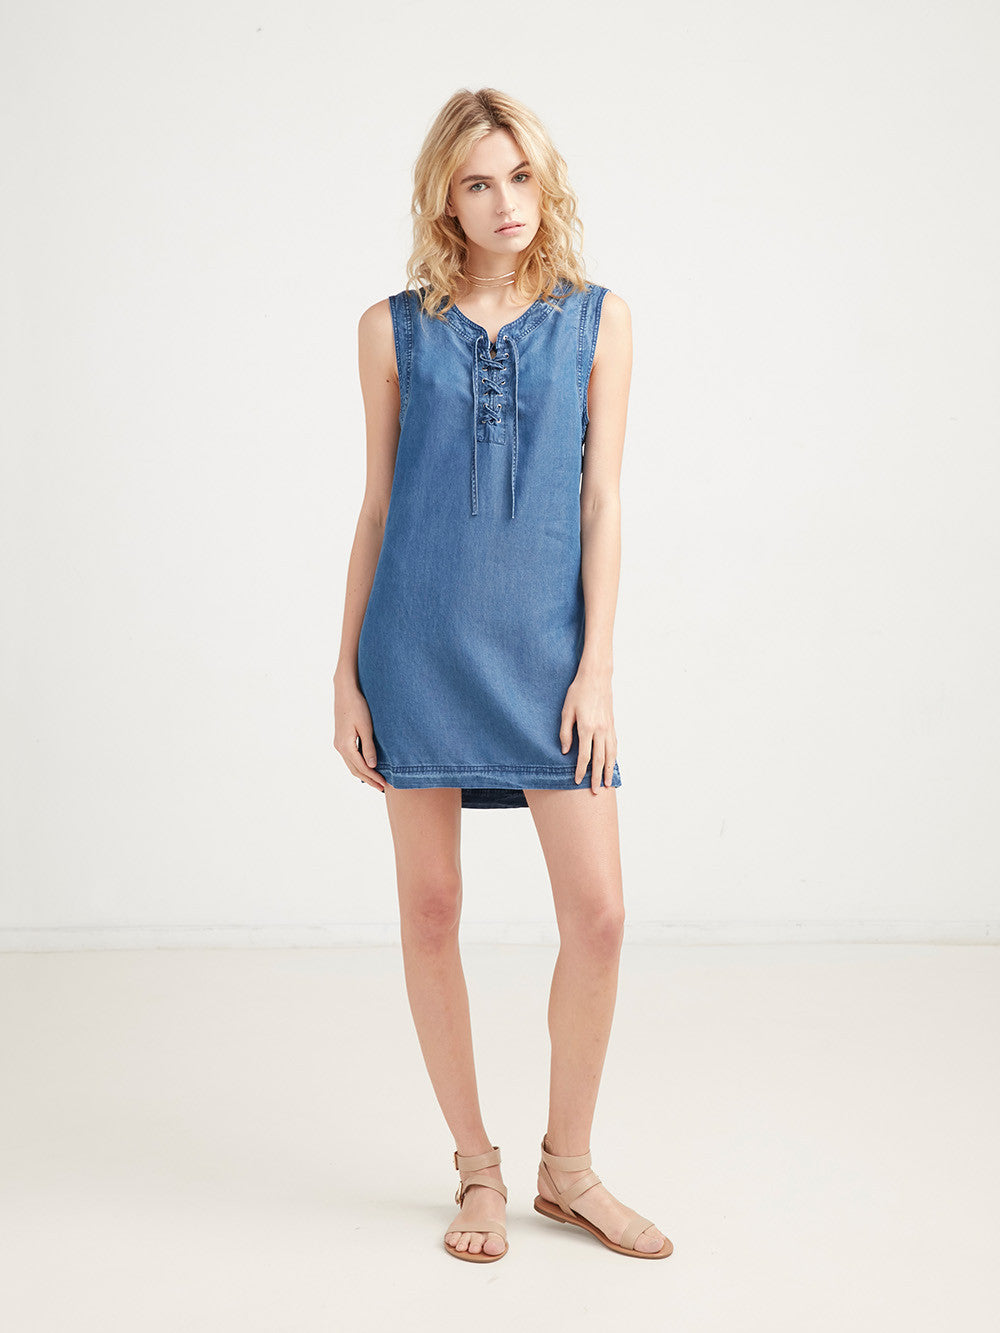 Nina Lace Up Denim Dress